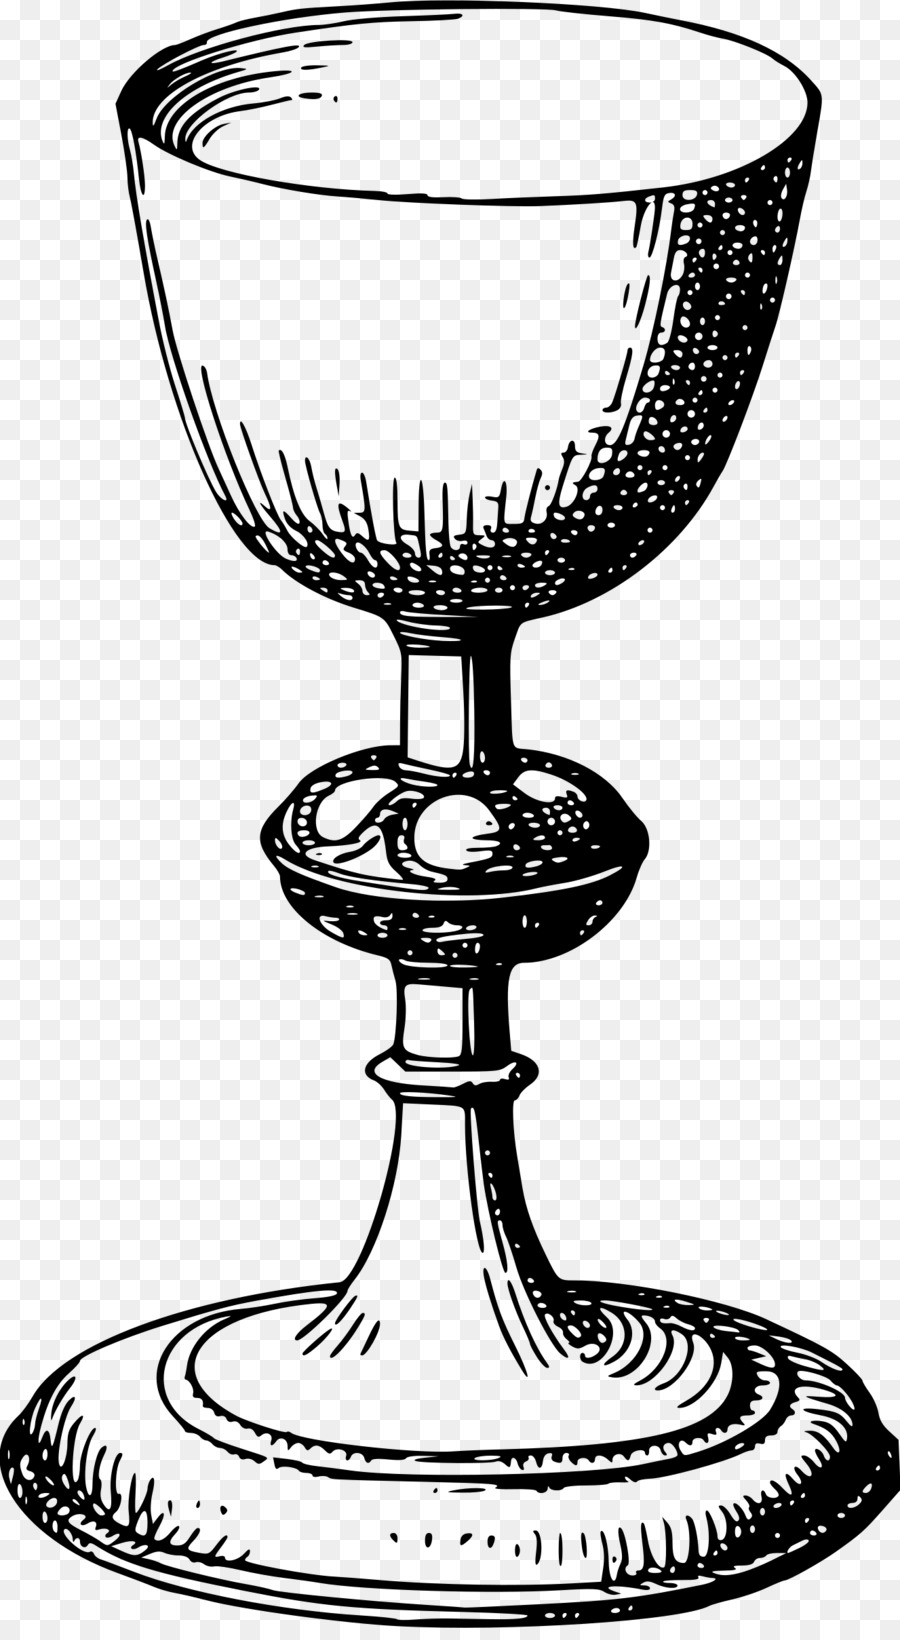 Chalice clipart svg free stock Wine Background clipart - Eucharist, Glass, transparent clip art svg free stock